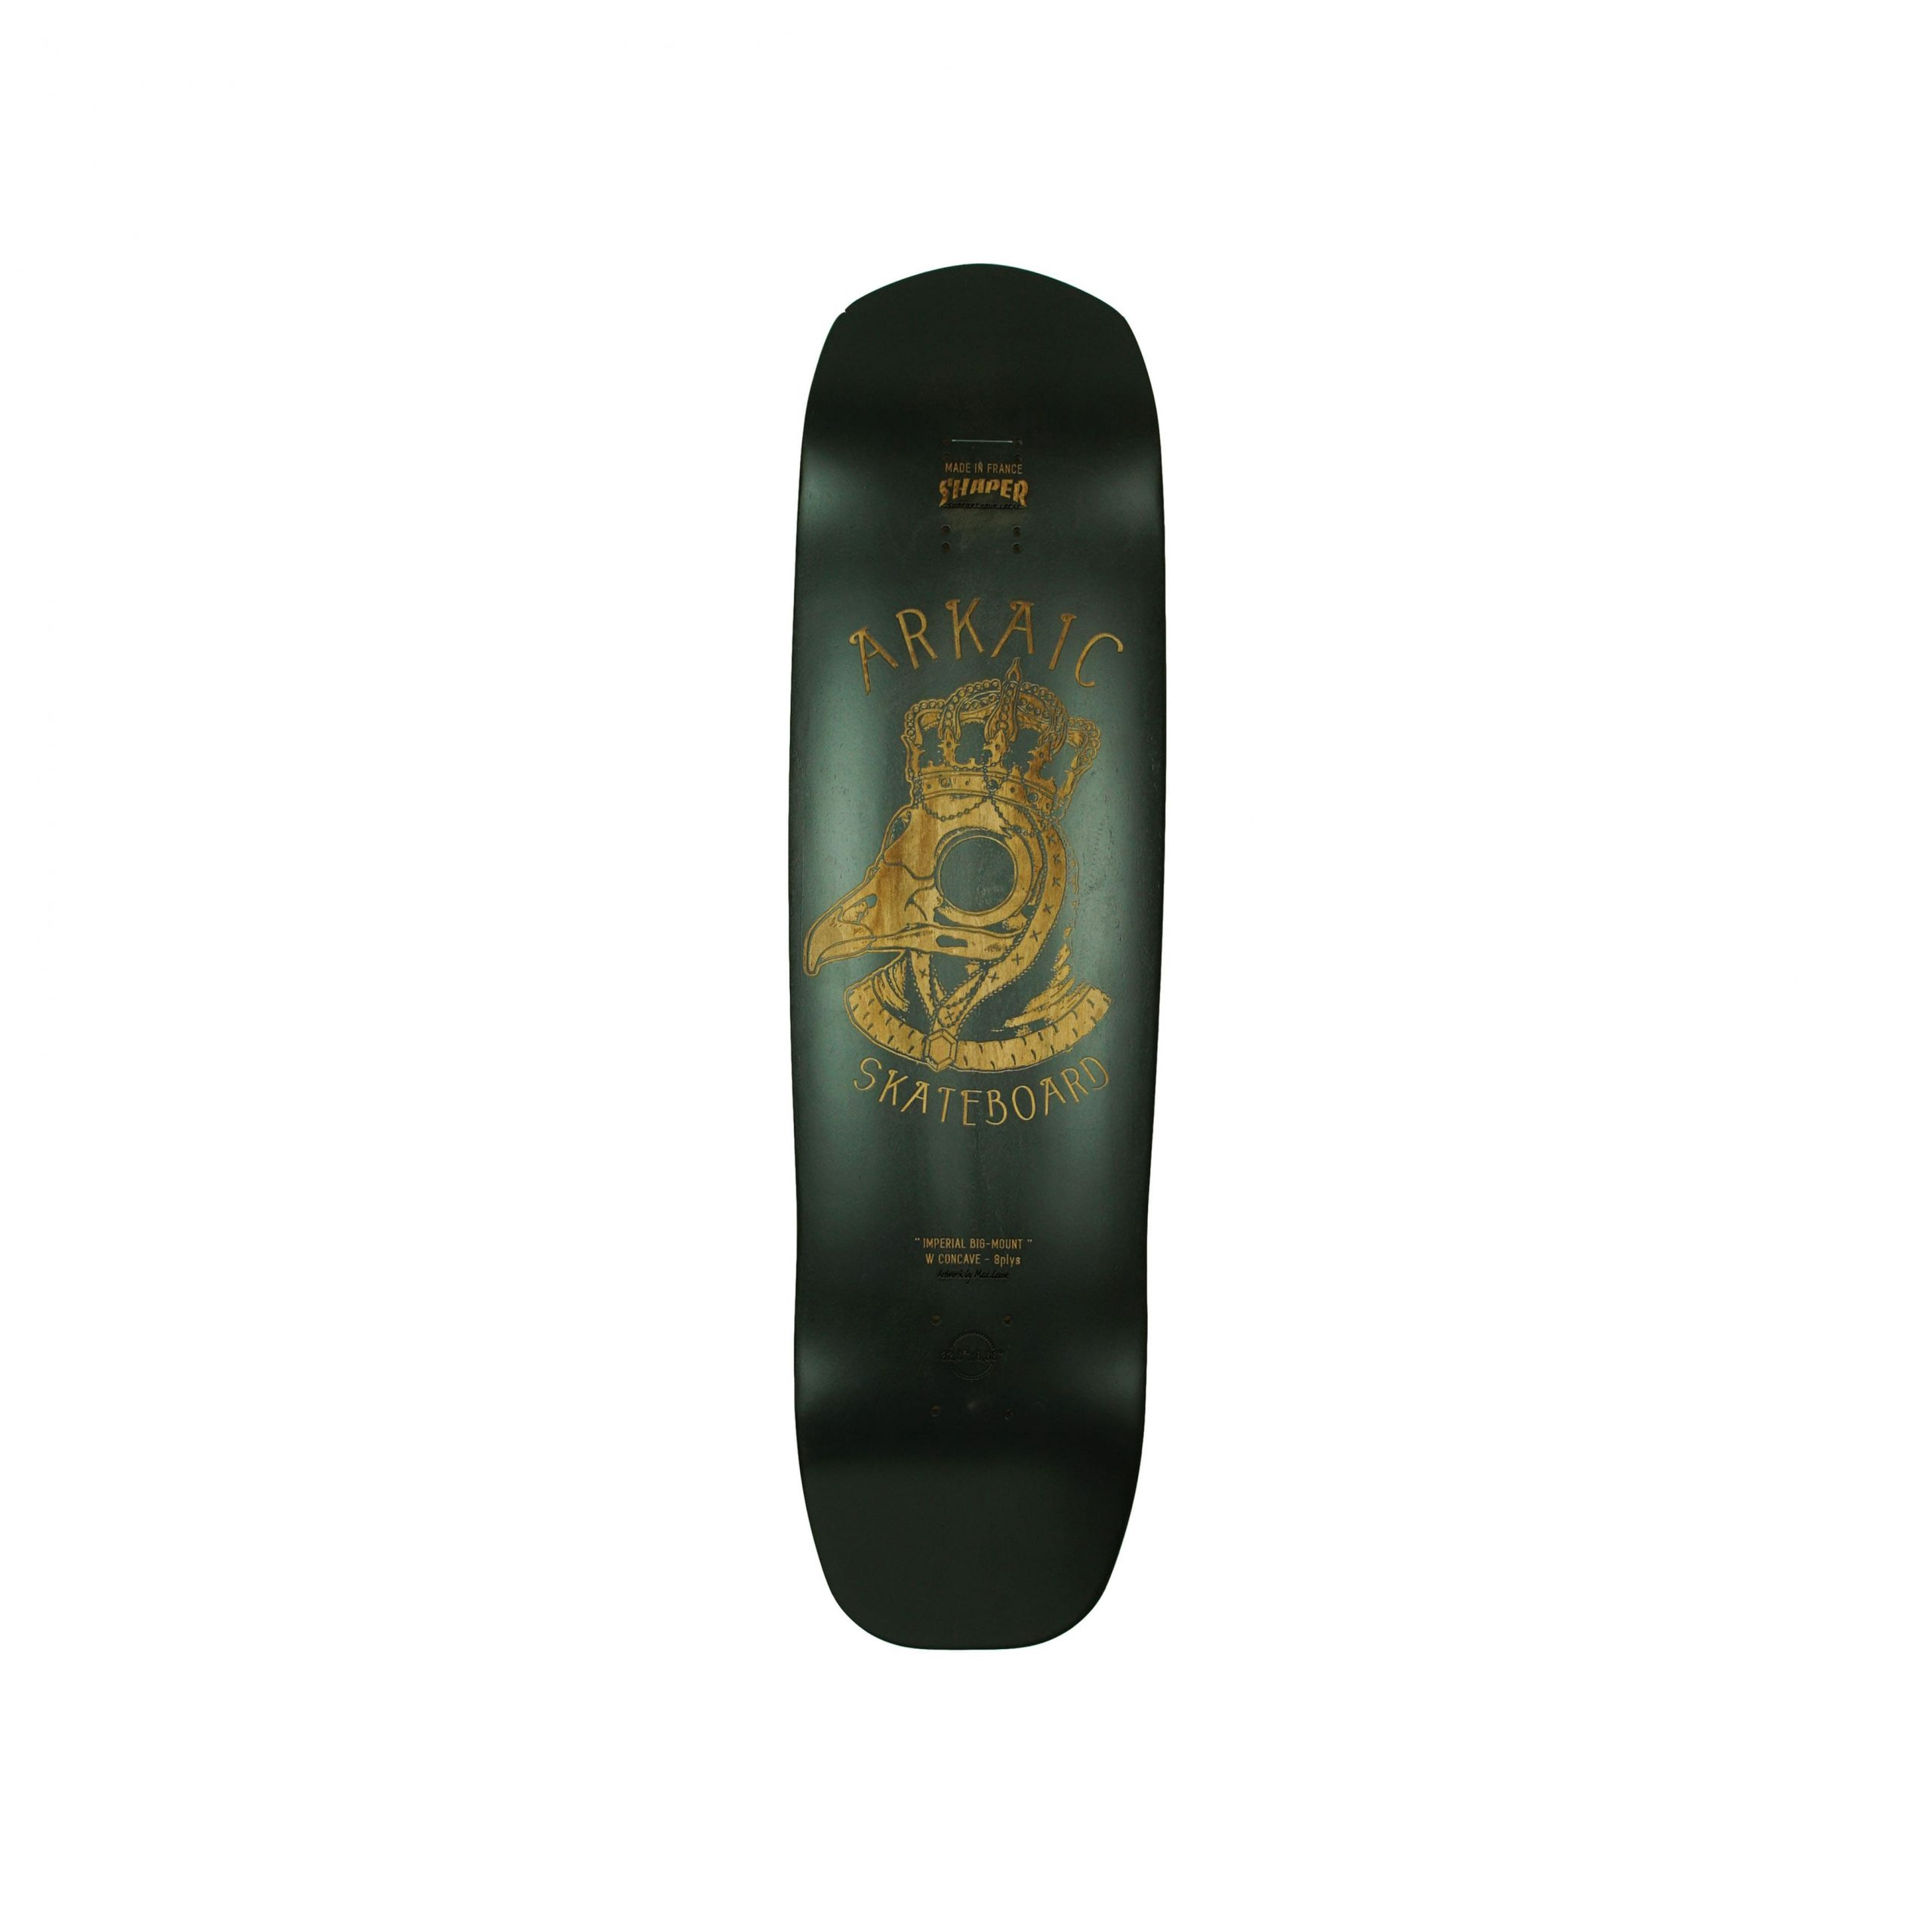 Longboard freeride made in france